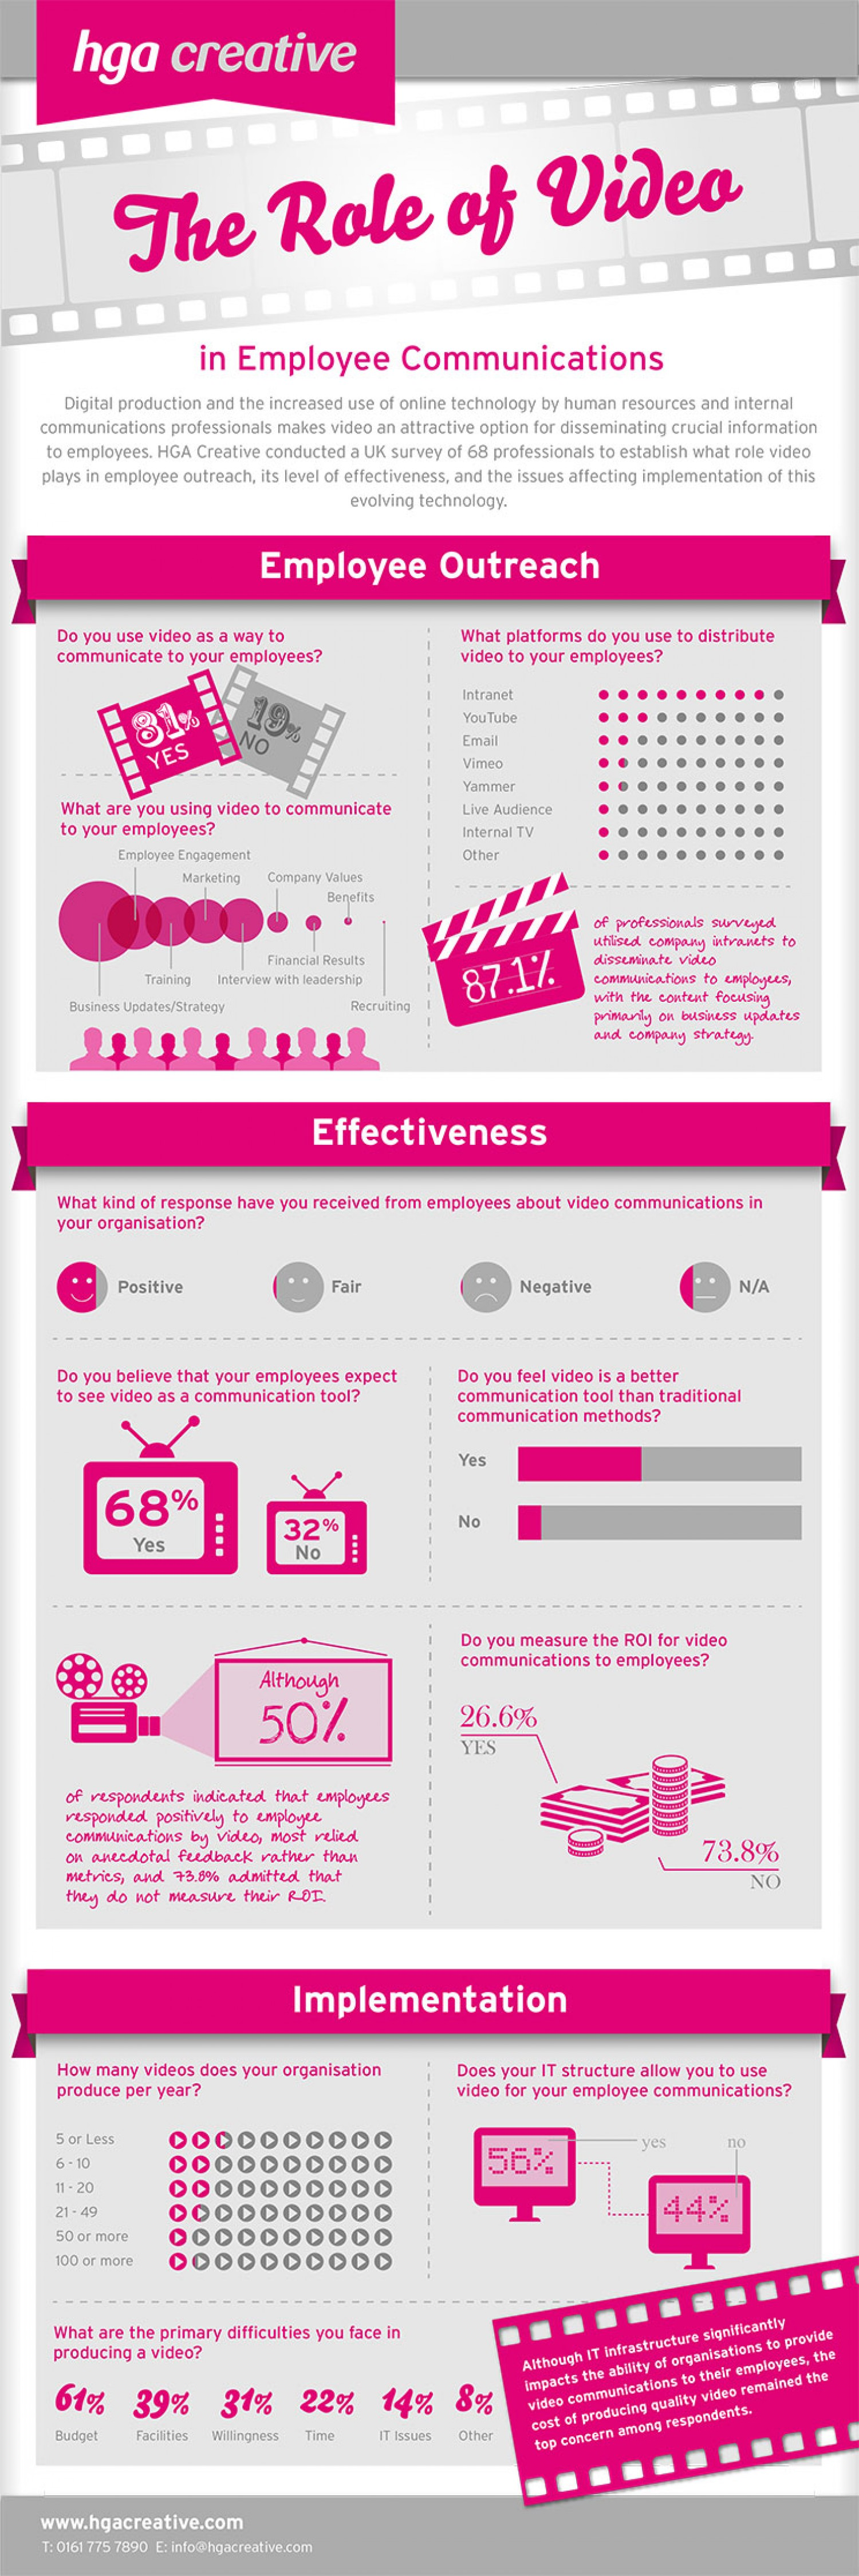 2. The Role of Video in Employee Communications